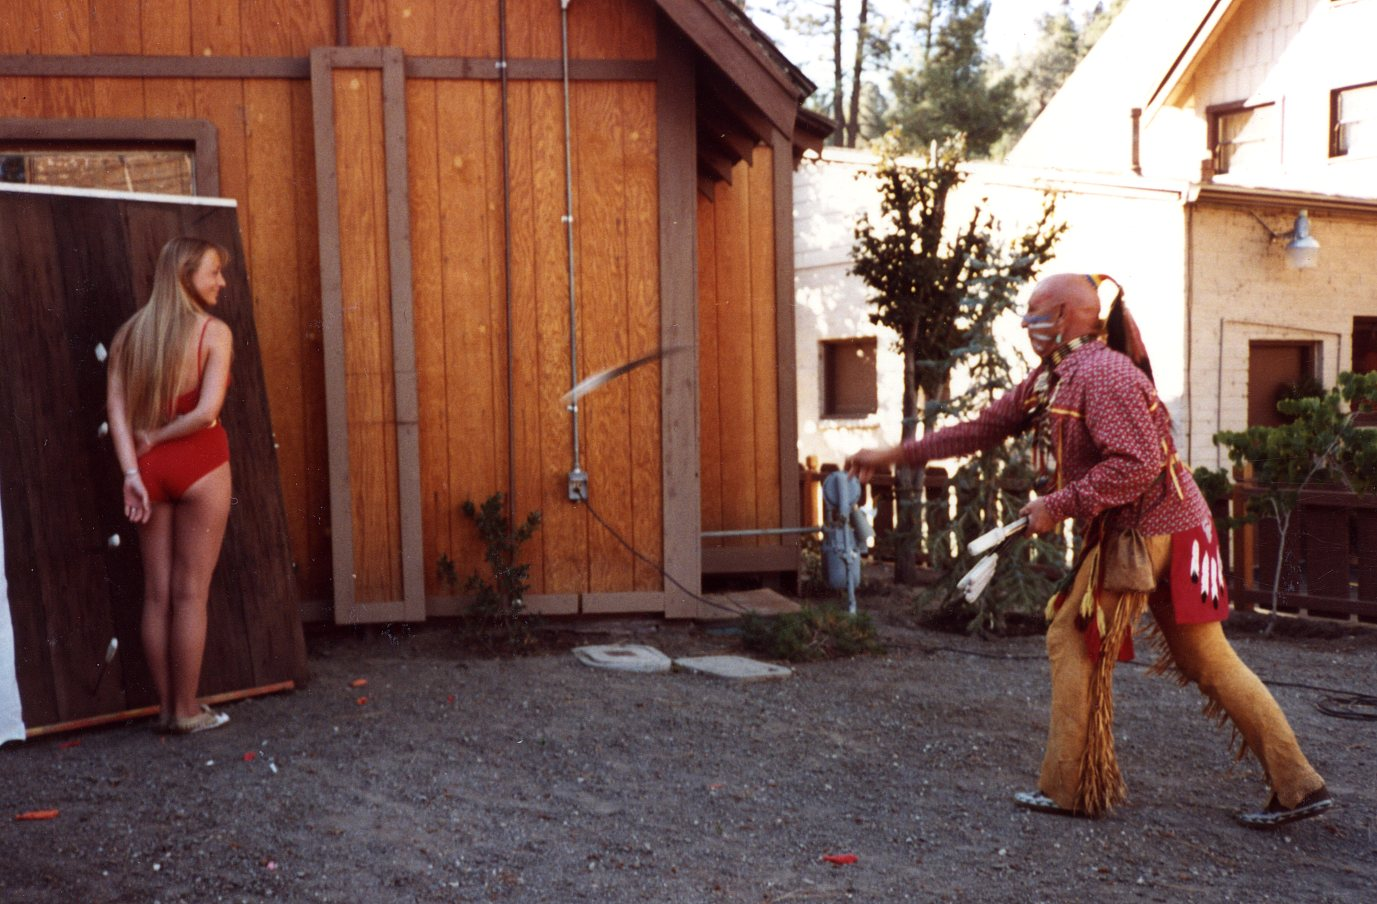 A scene I witnessed many times in my old stomping grounds in Wrightwood, California.